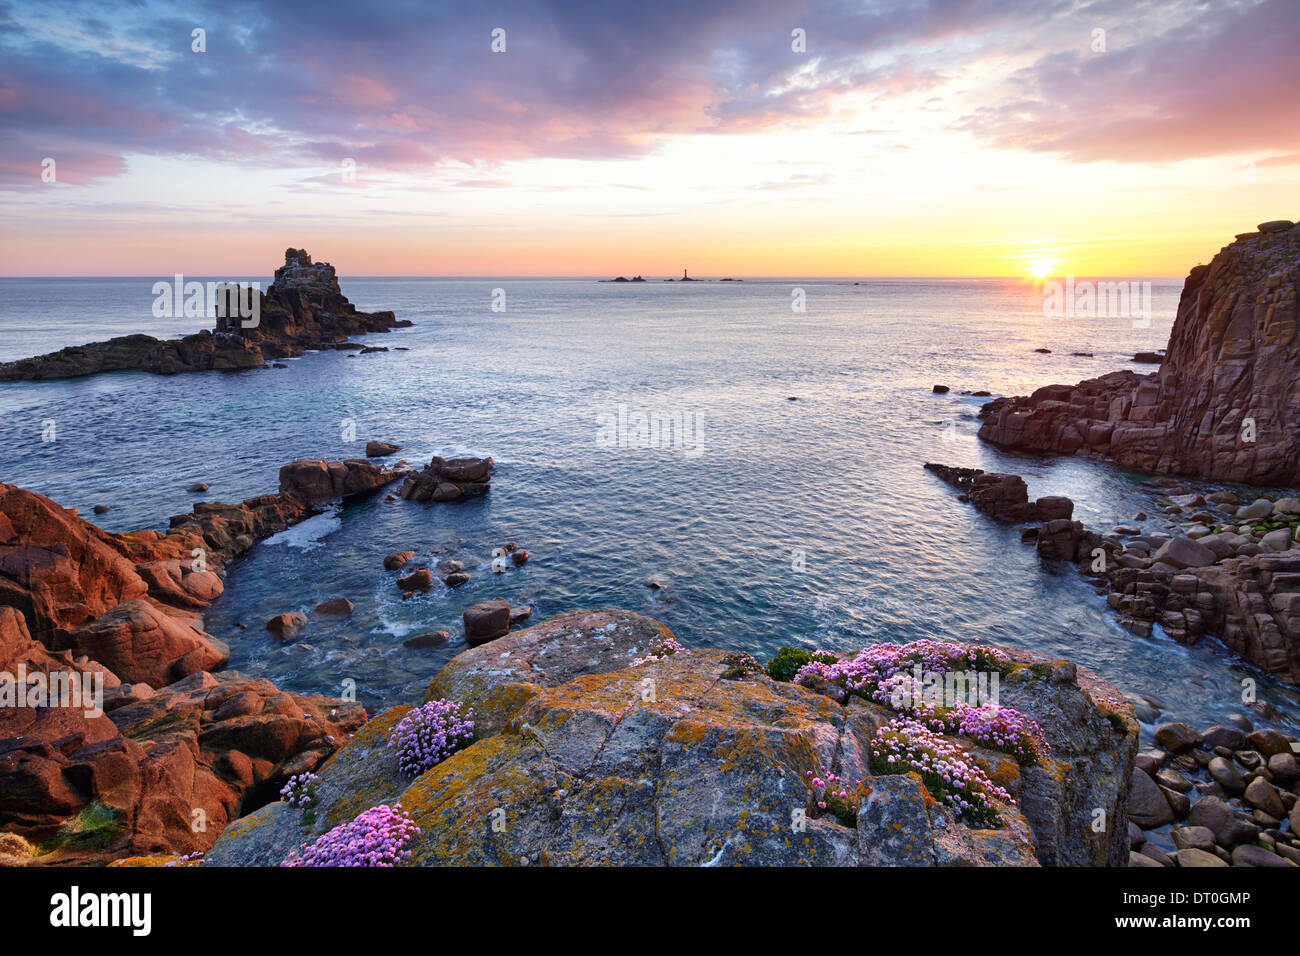 The sun setting at Land's End with thrift clinging to the rocks. - Stock Image